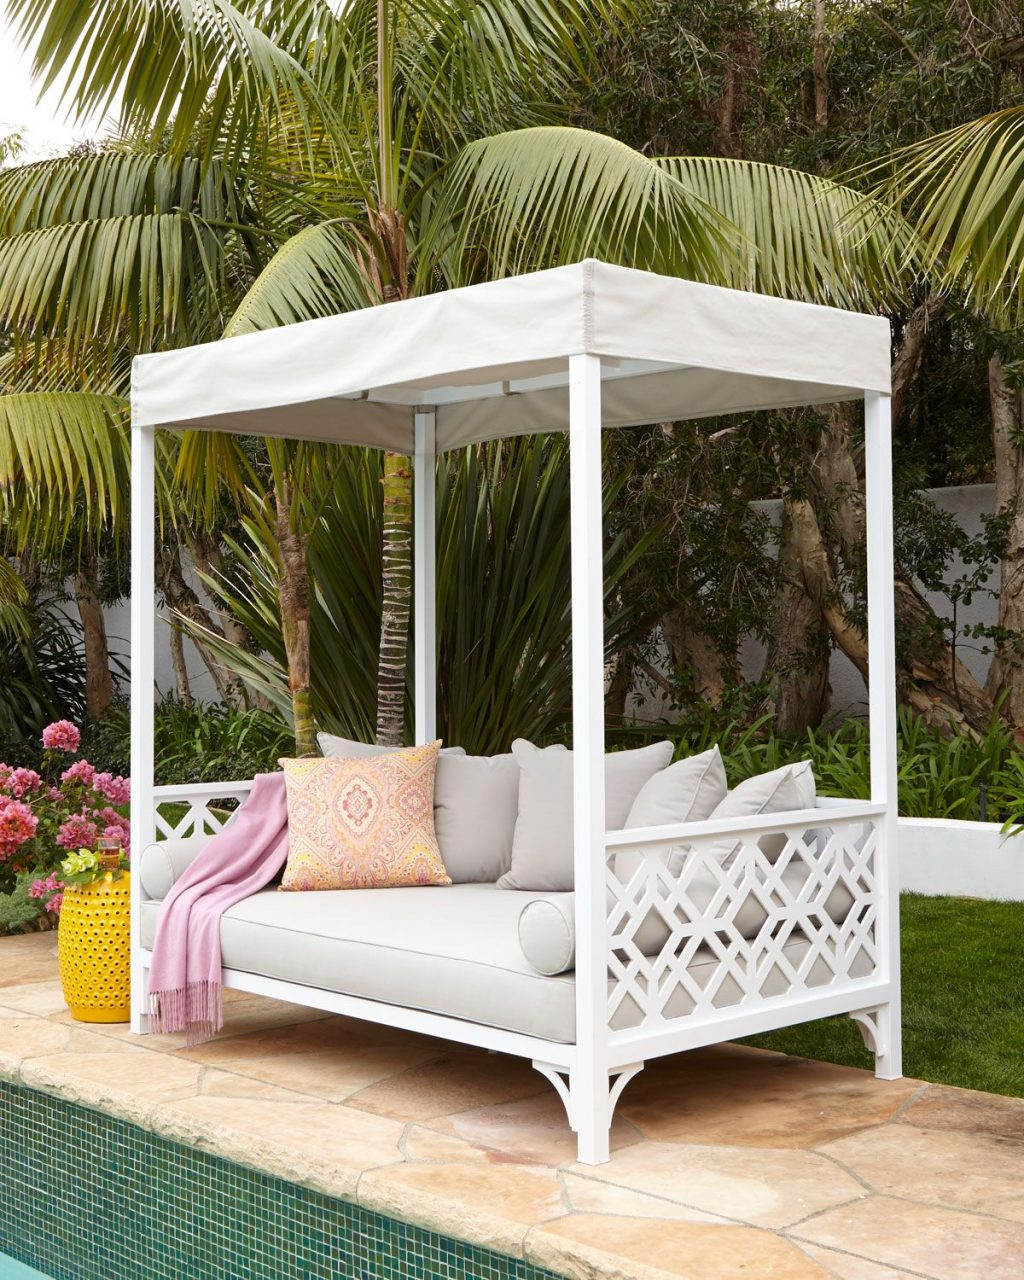 Made In The Shade A Canopy Covered Outdoor Daybed Made For Lounging